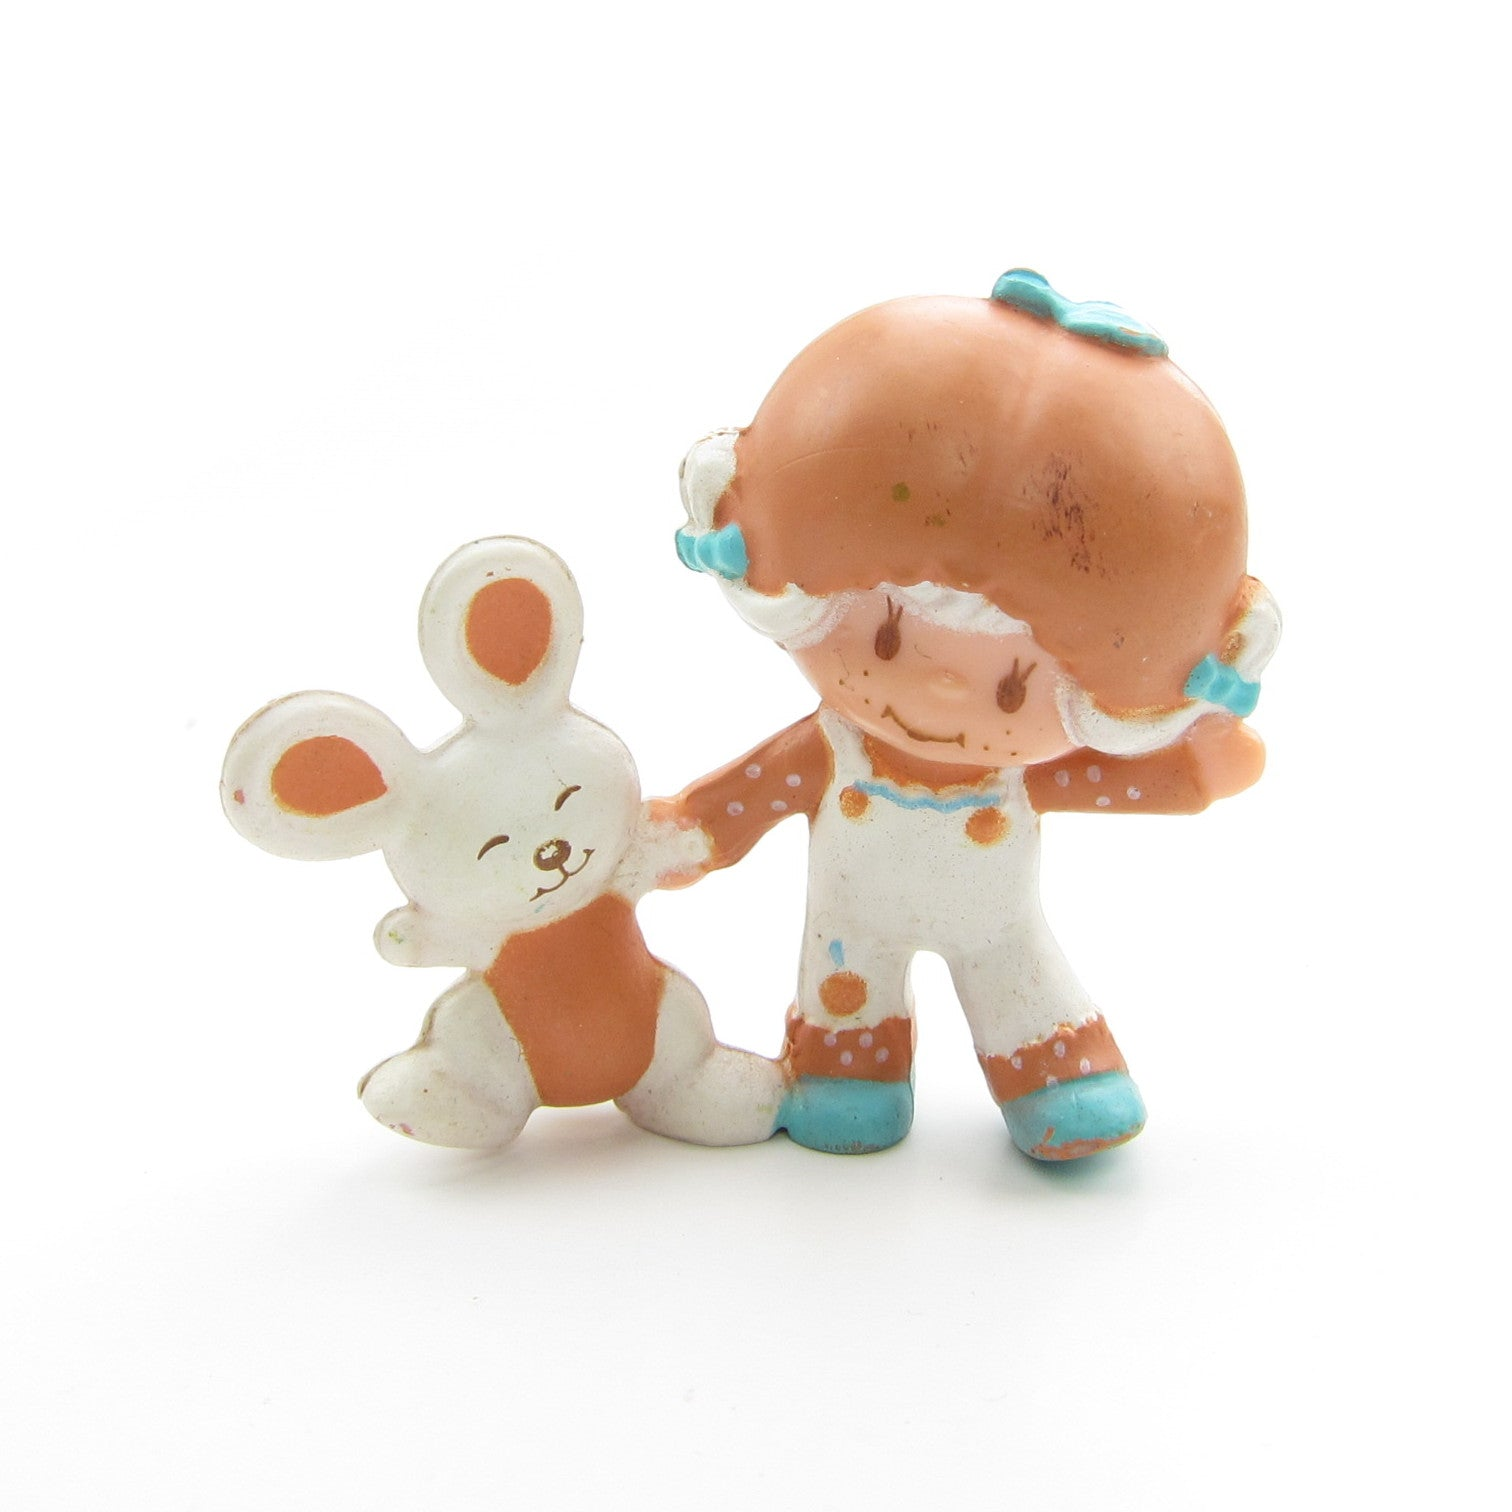 Apricot Dancing with Hopsalot Strawberry Shortcake miniature figurine